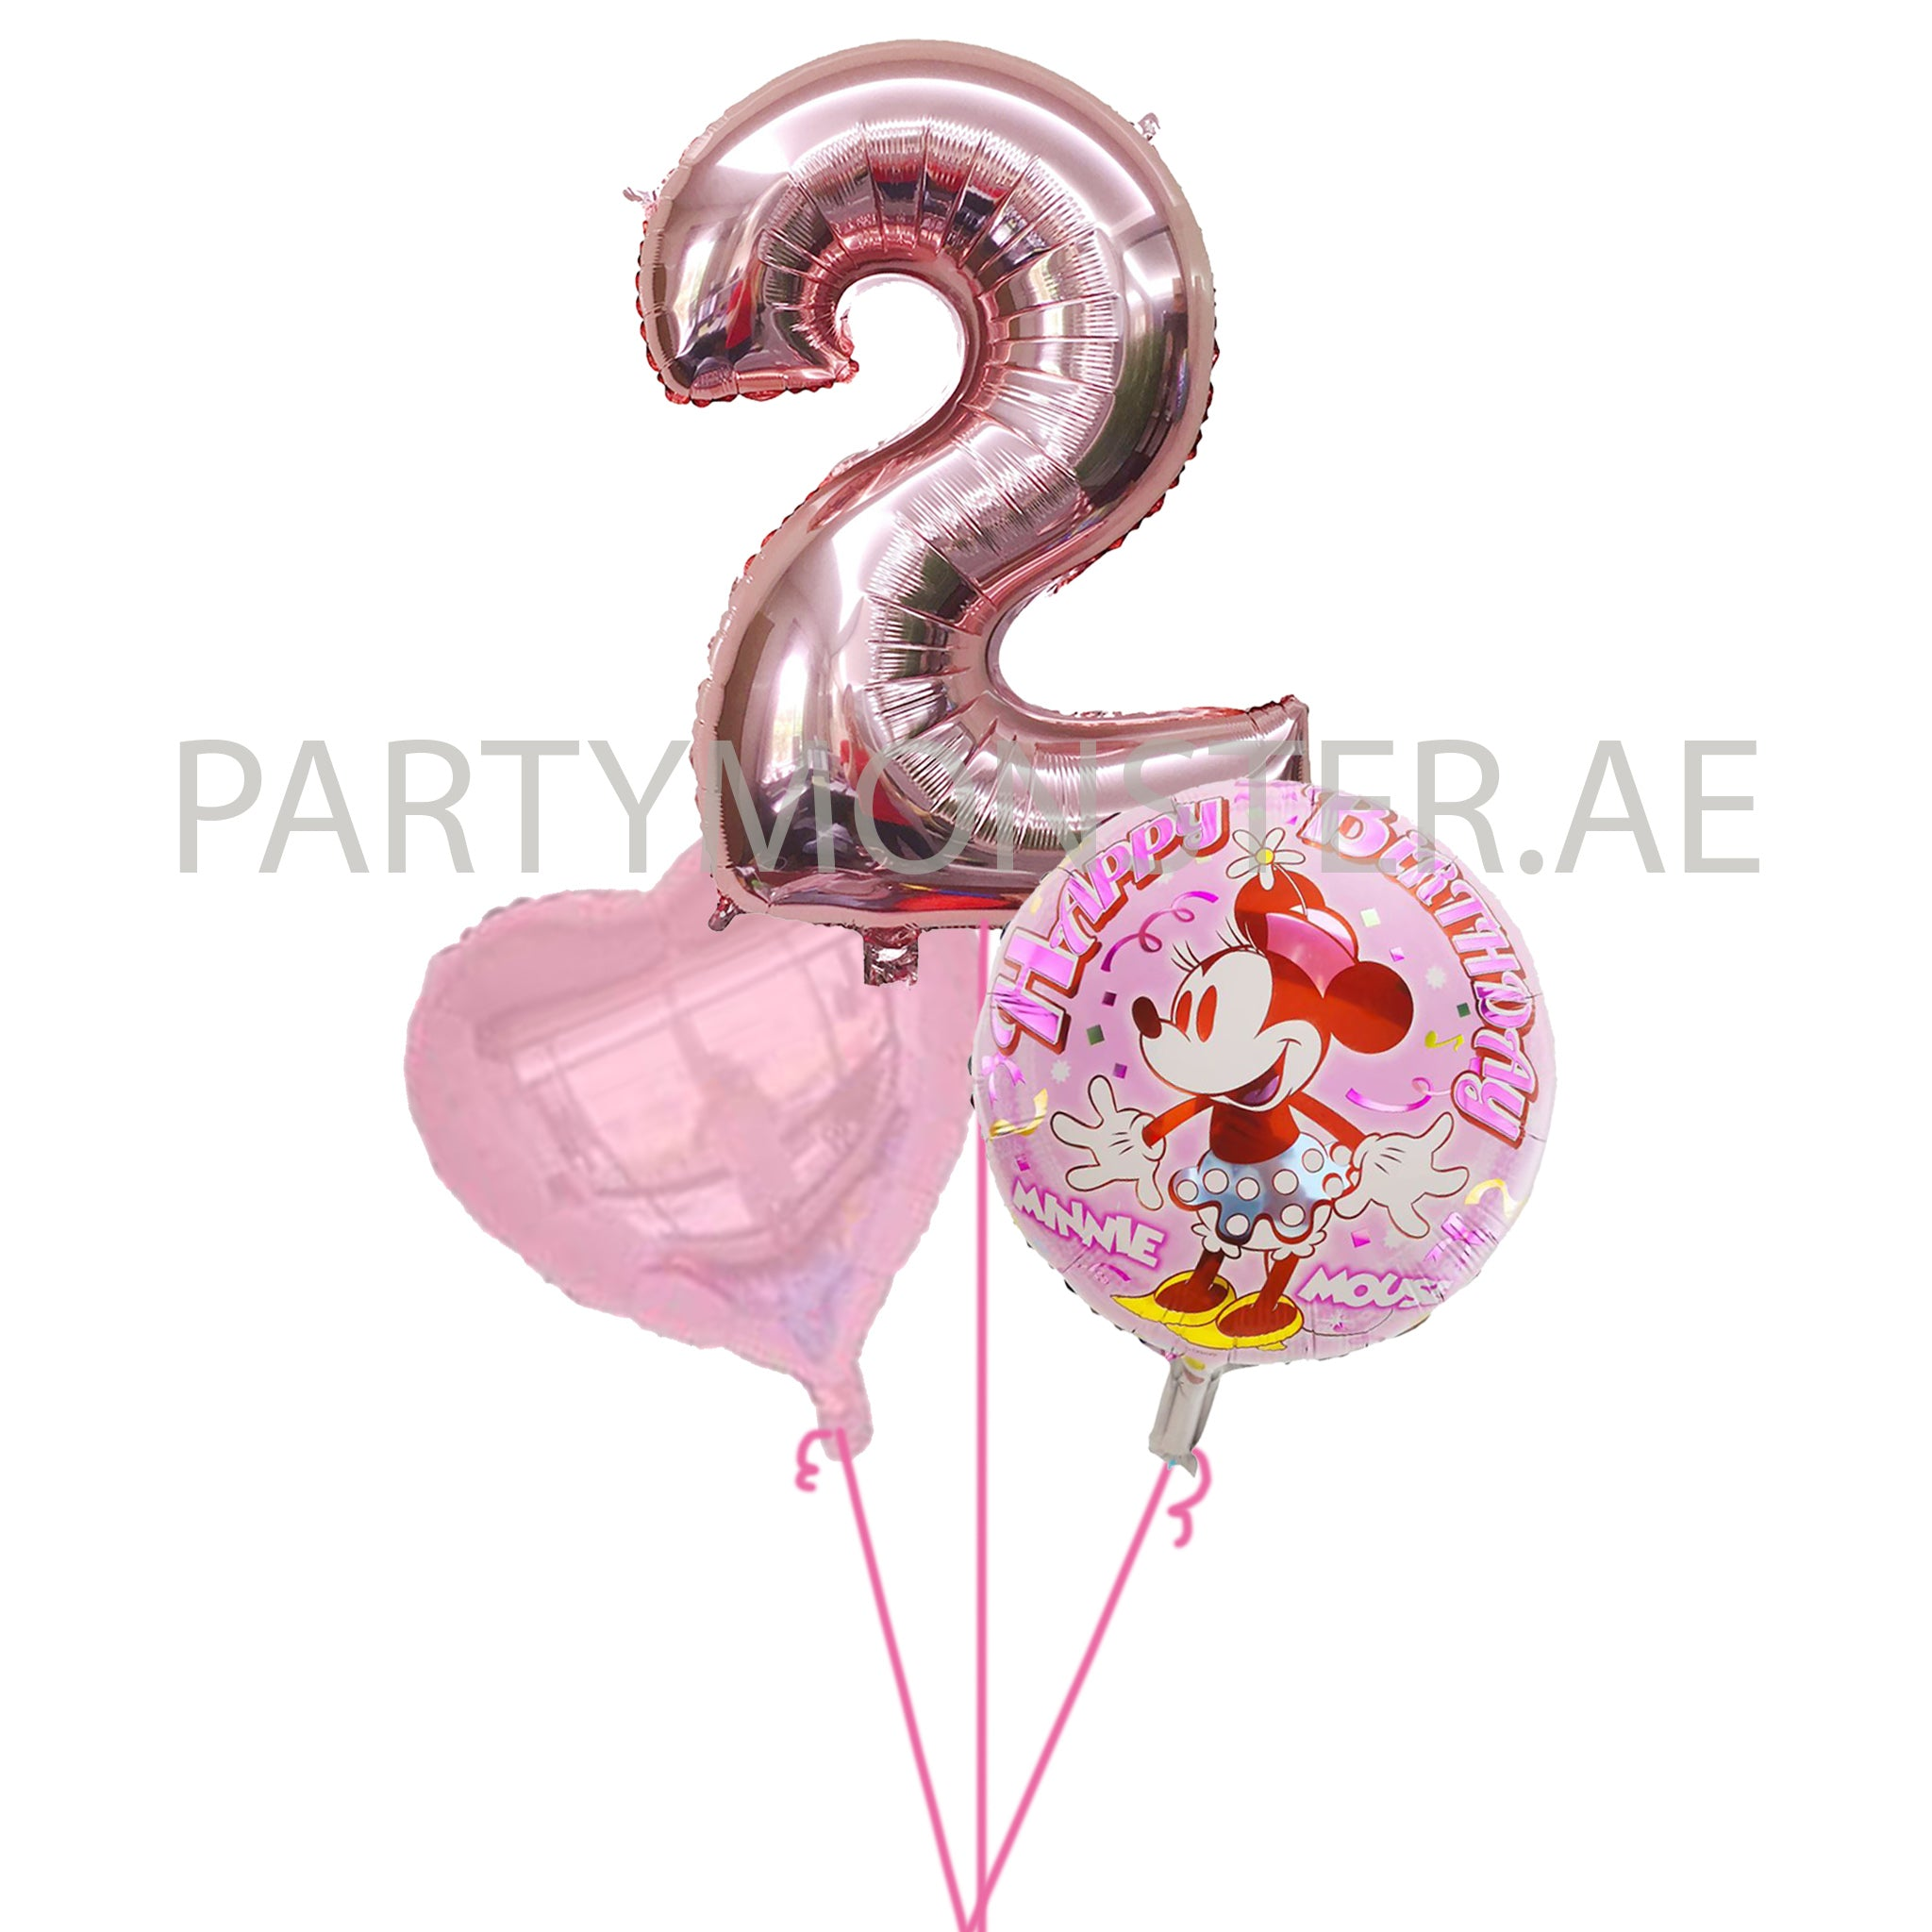 Minnie Mouse with any number birthday balloon bouquet - PartyMonster.ae